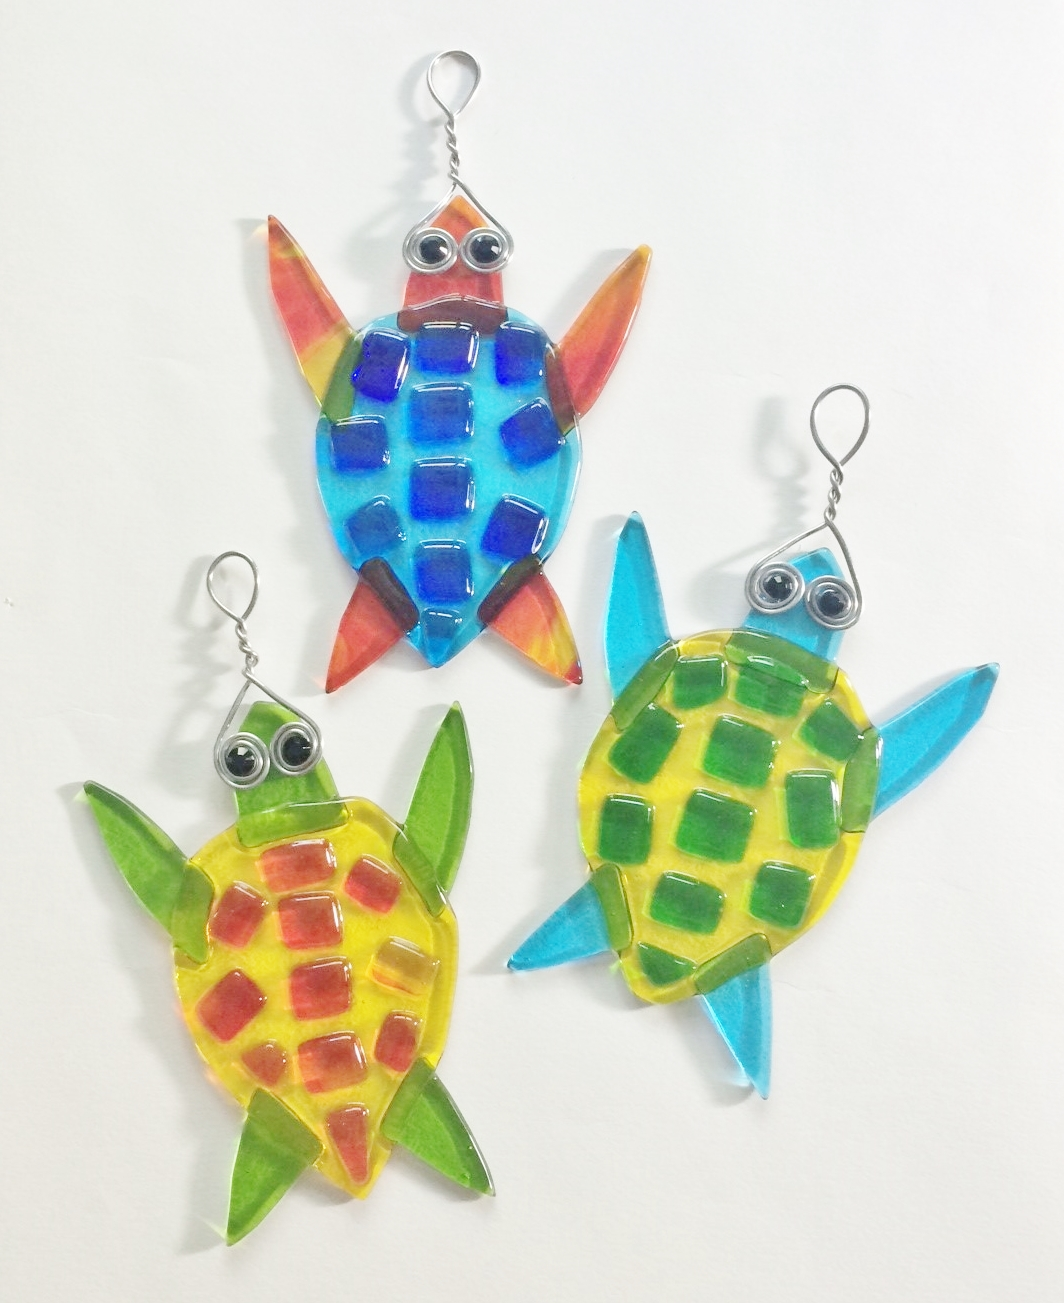 Turtles $19.98 each